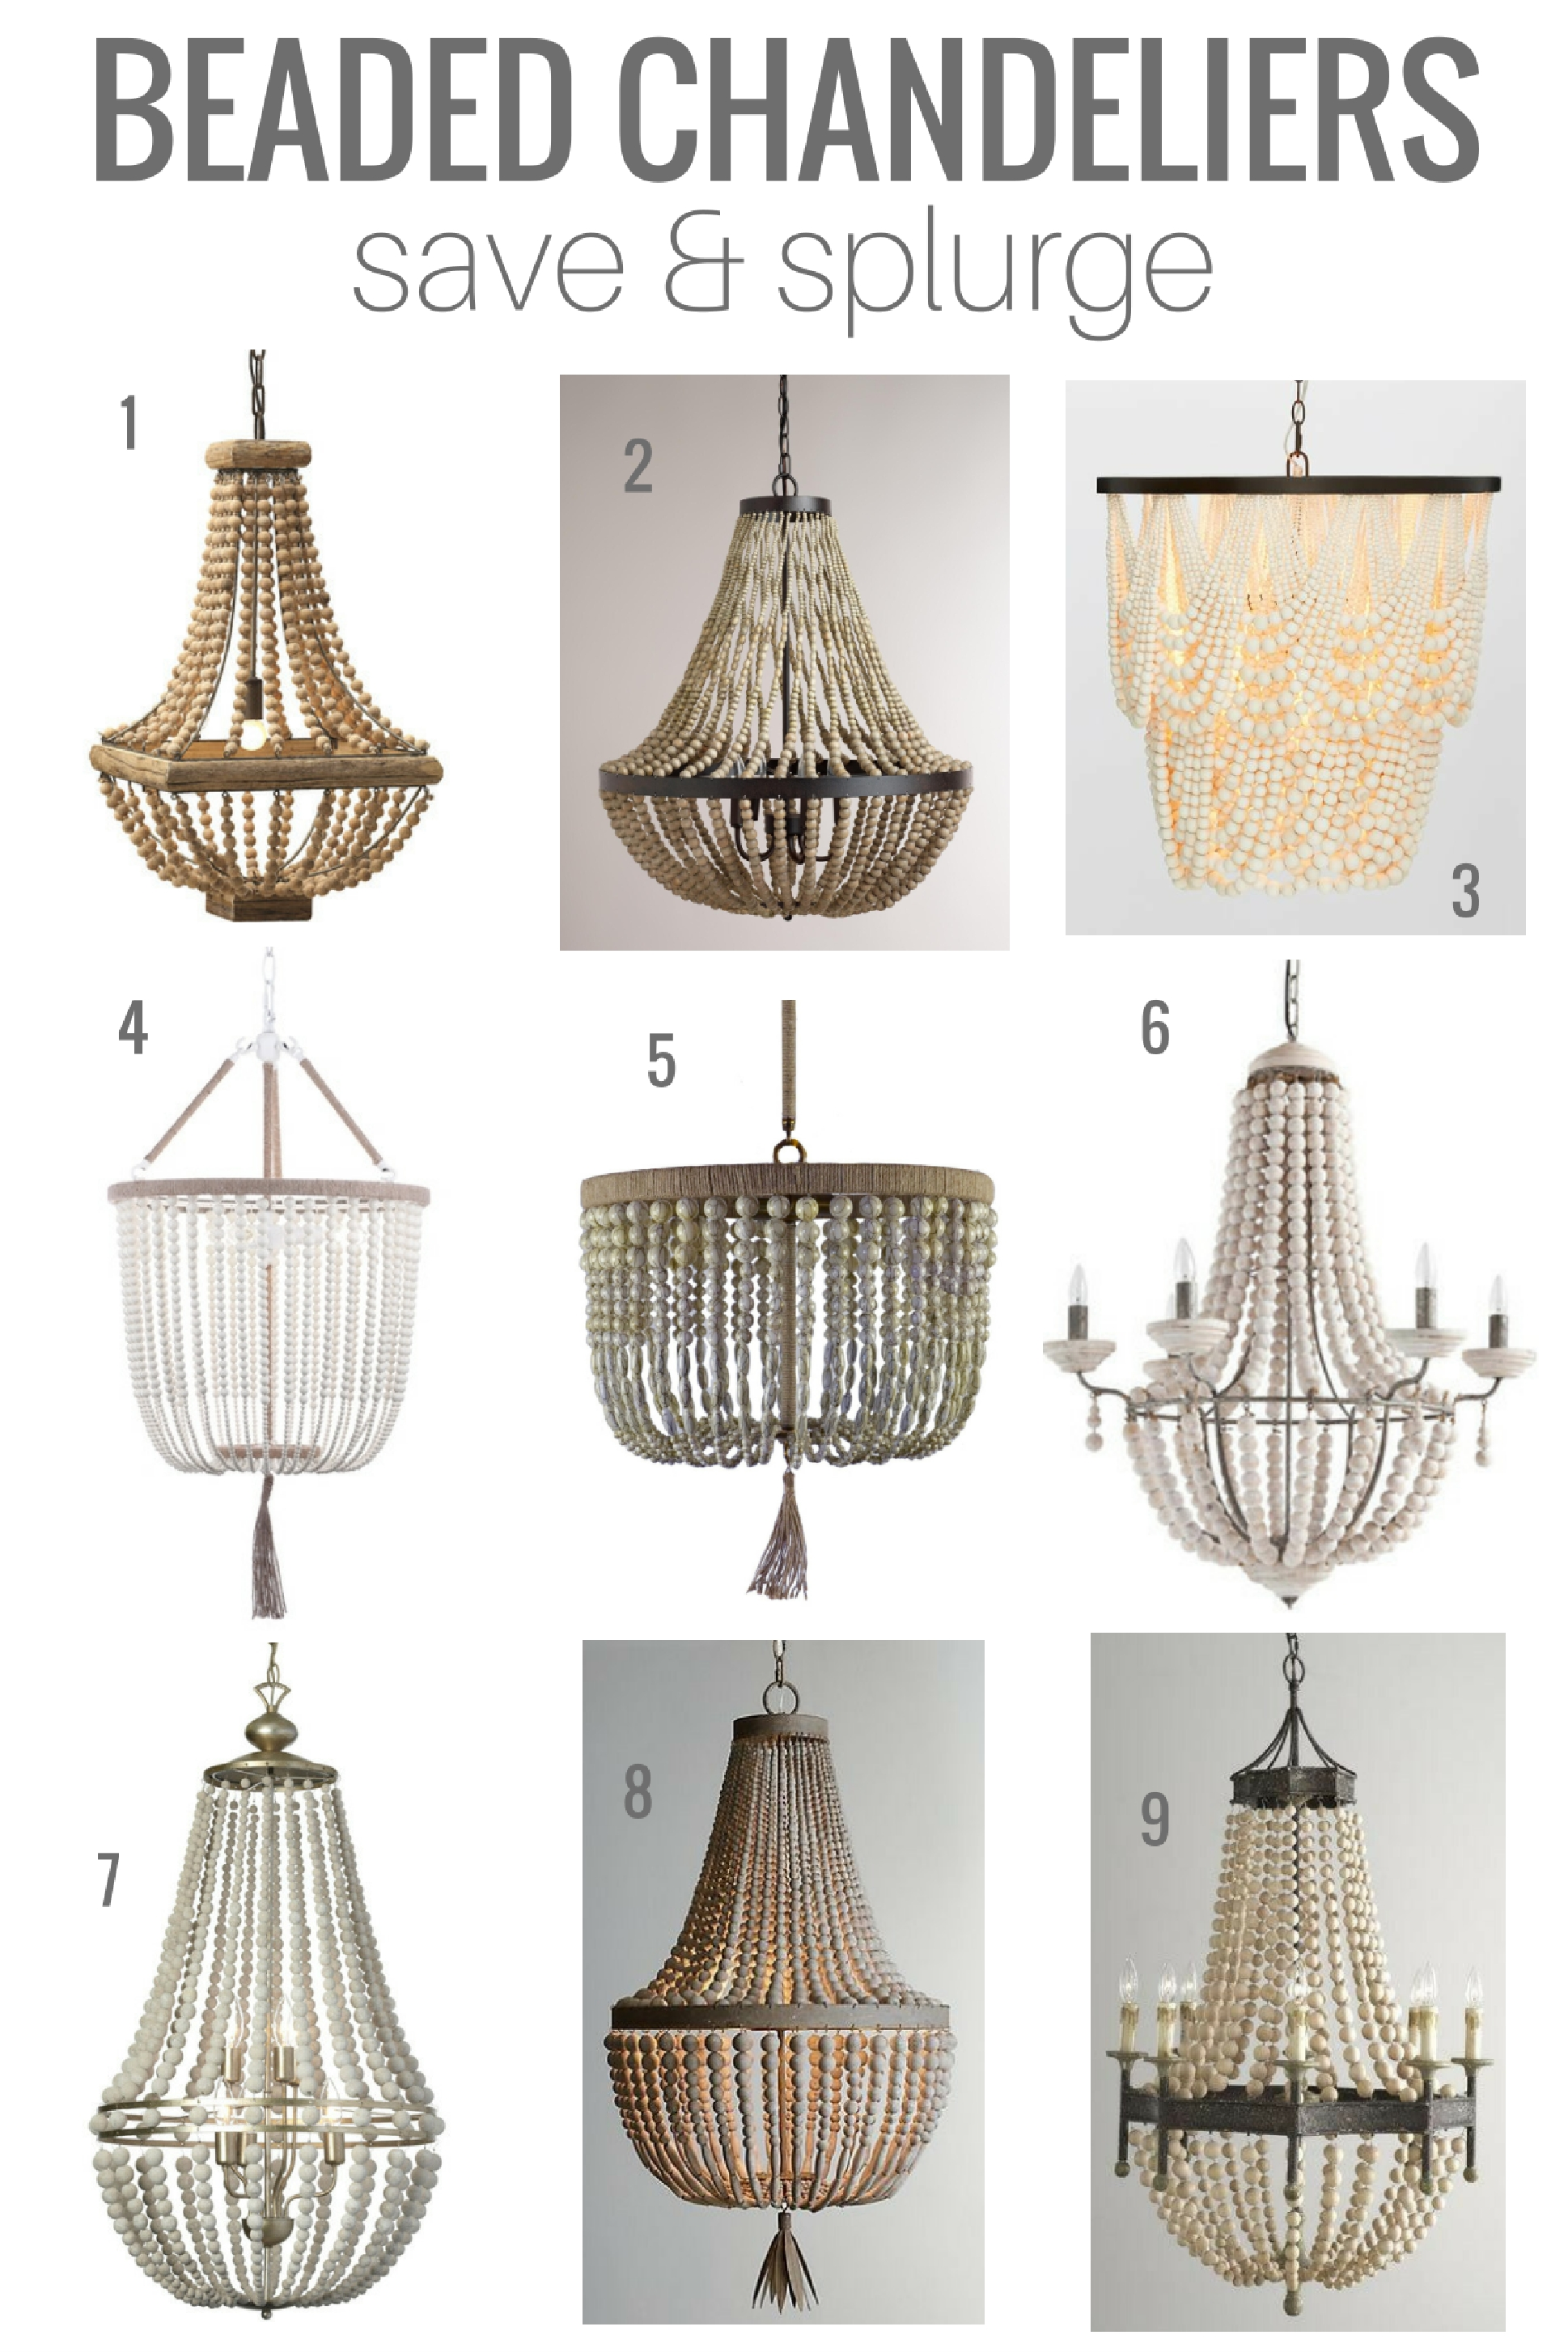 Beaded Chandeliers Invaluable Lighting Lessons Chandeliers Pertaining To Turquoise Empire Chandeliers (Image 6 of 25)